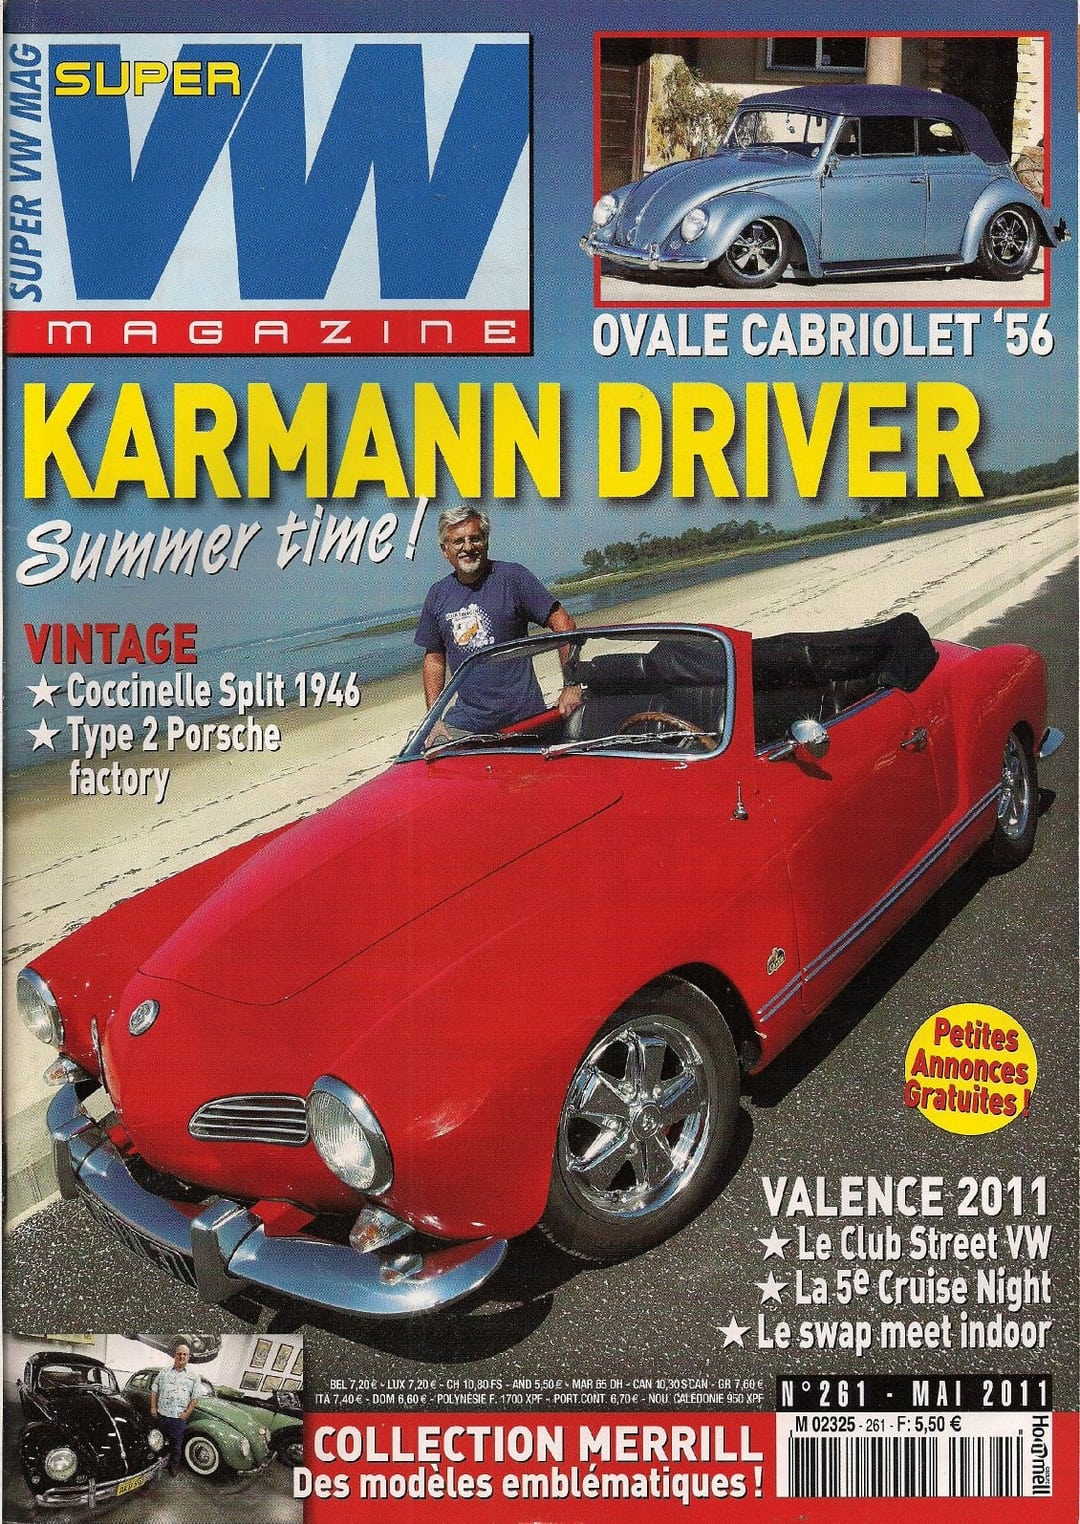 super vw magazine n 261 karmann driver ovale cabriolet 39 56 mai 2011 ebay. Black Bedroom Furniture Sets. Home Design Ideas